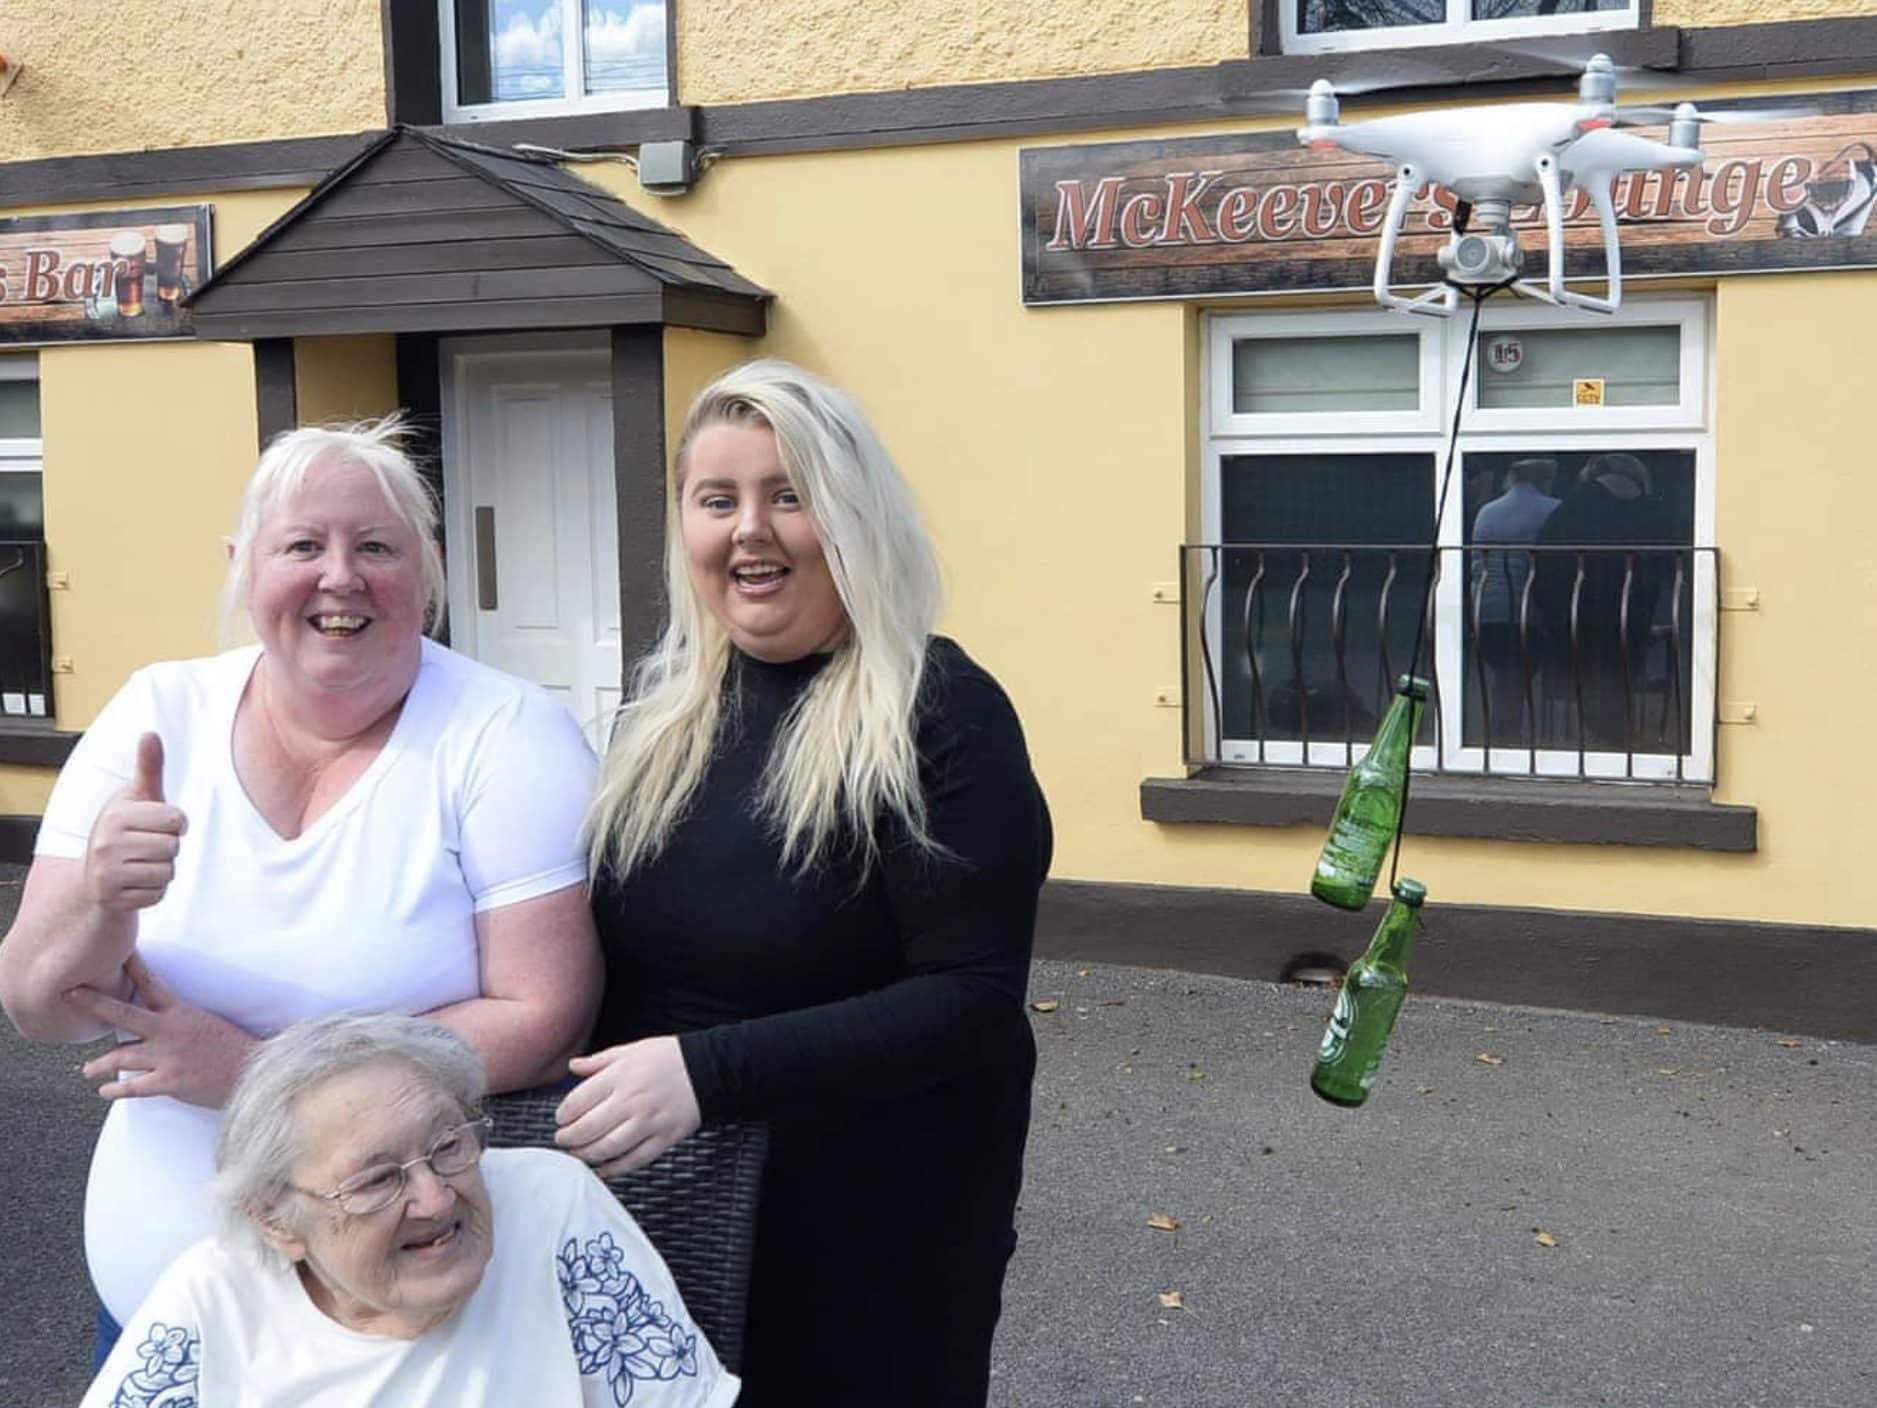 Irish pubs use drones to deliver Guinness and lift spirits